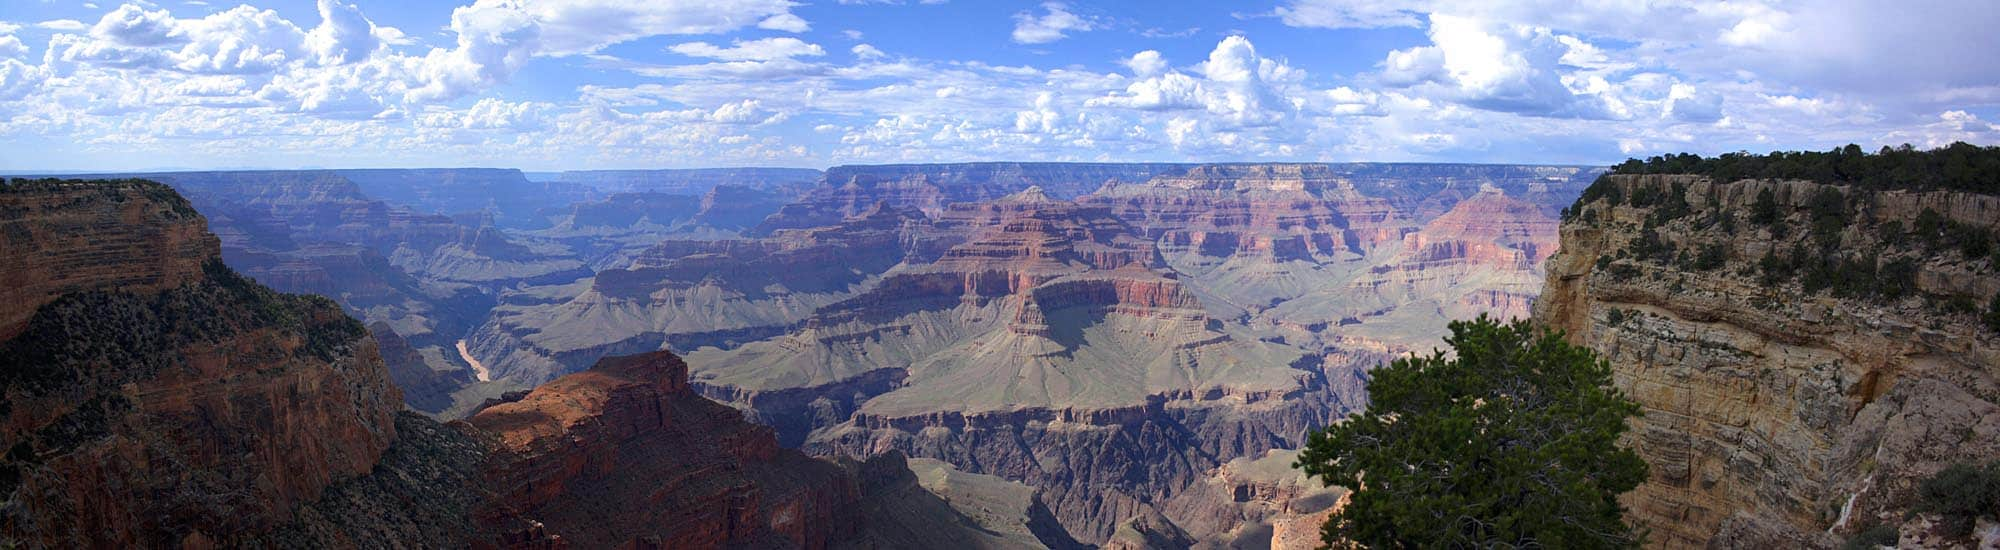 usa_grand-canyon-1839279.jpg